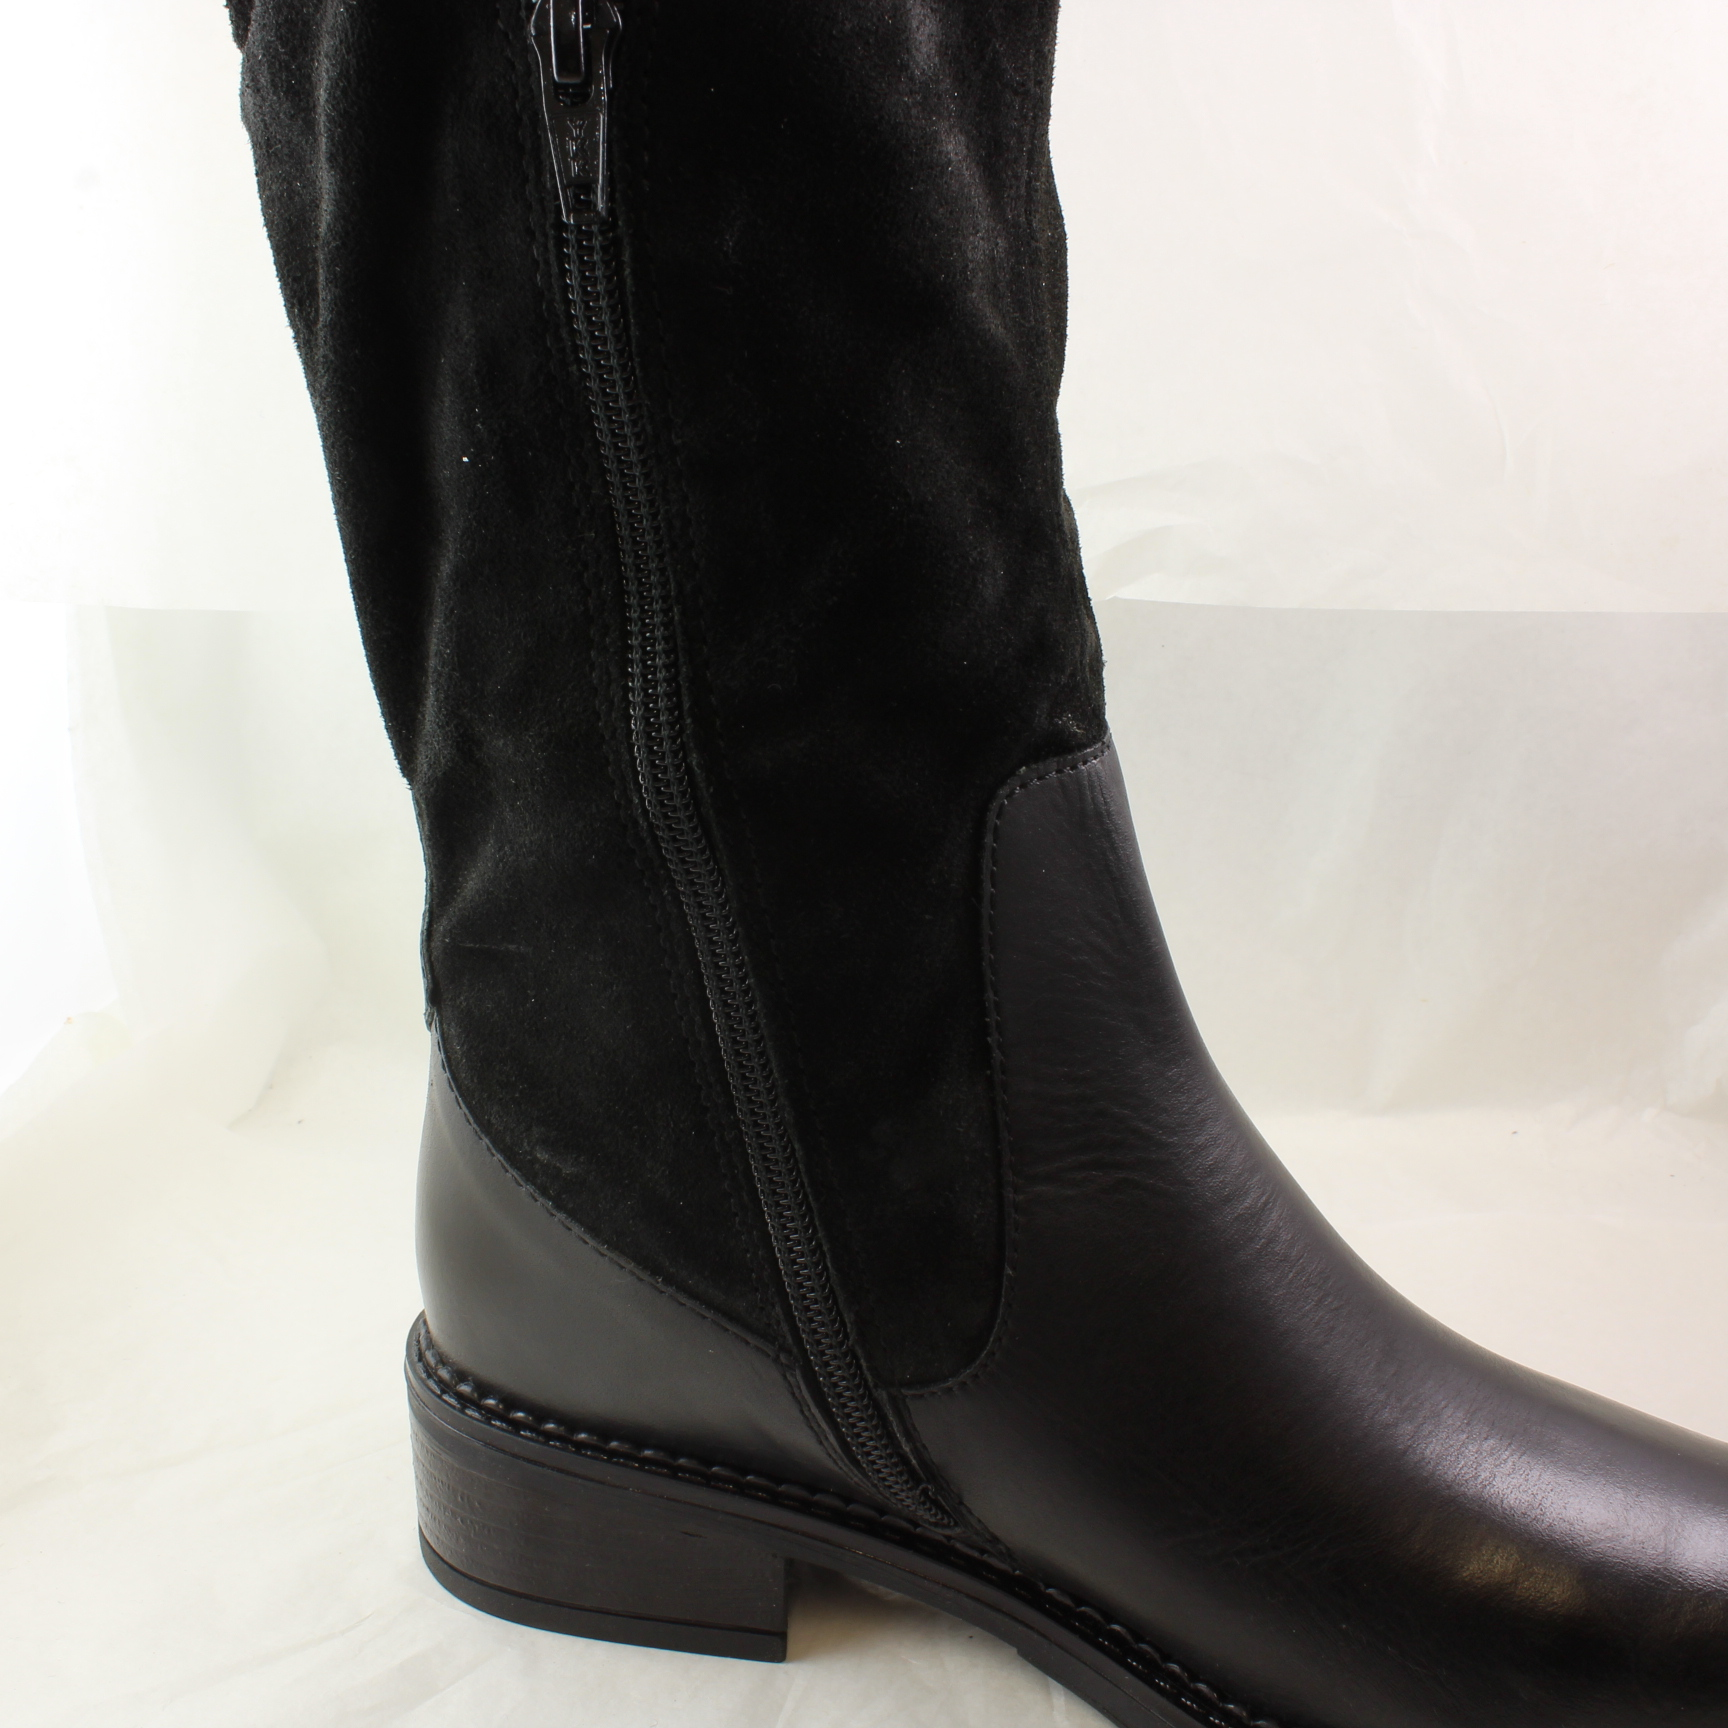 womens office black leather knee high boots uk size 3 ex